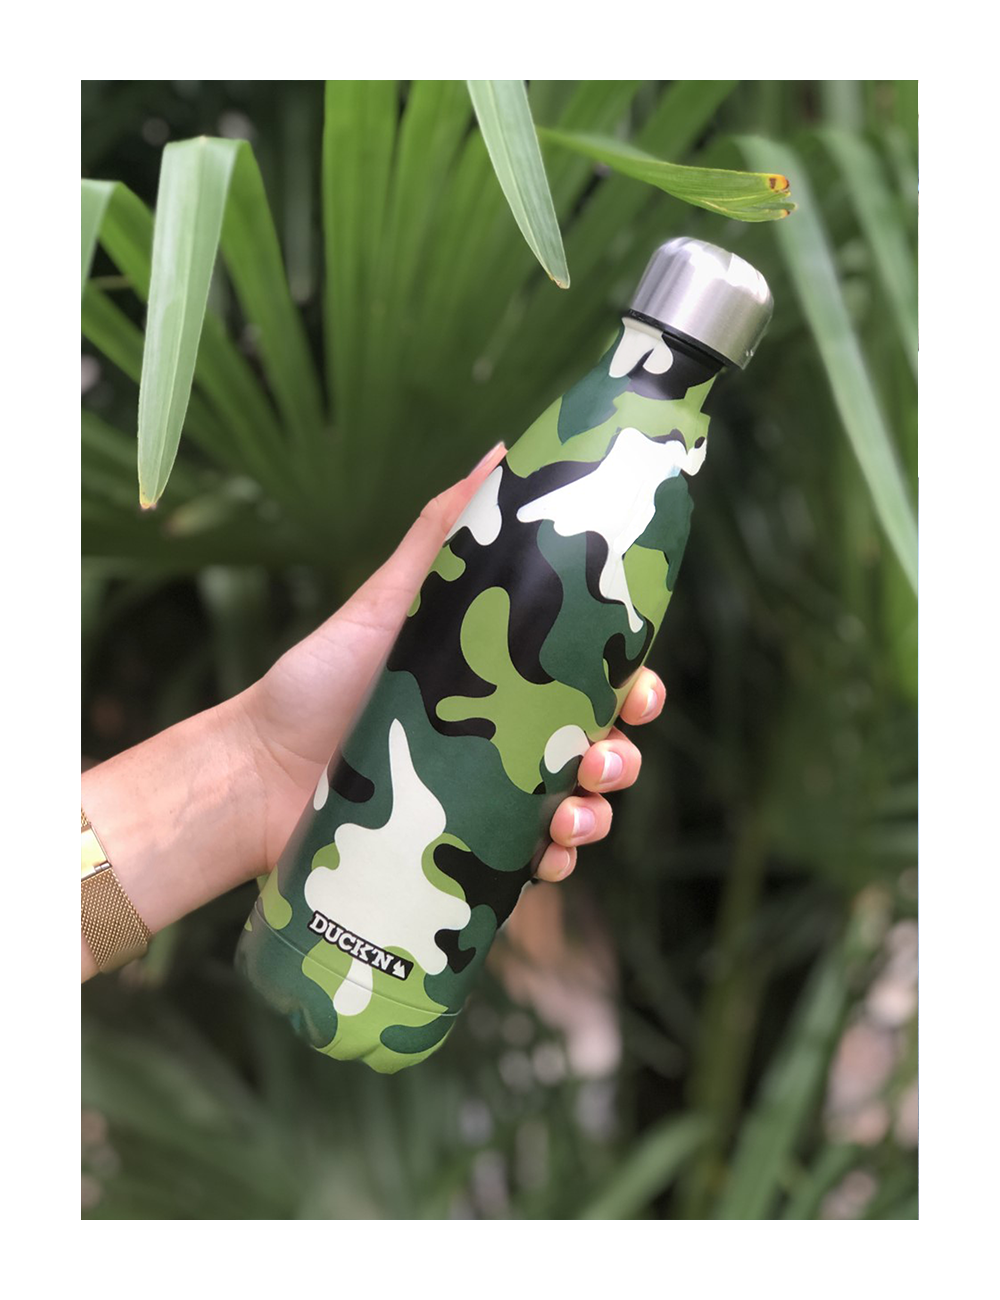 Bouteille Isotherme Duck'n 500ML Motifs Camouflage Militaire finition mate